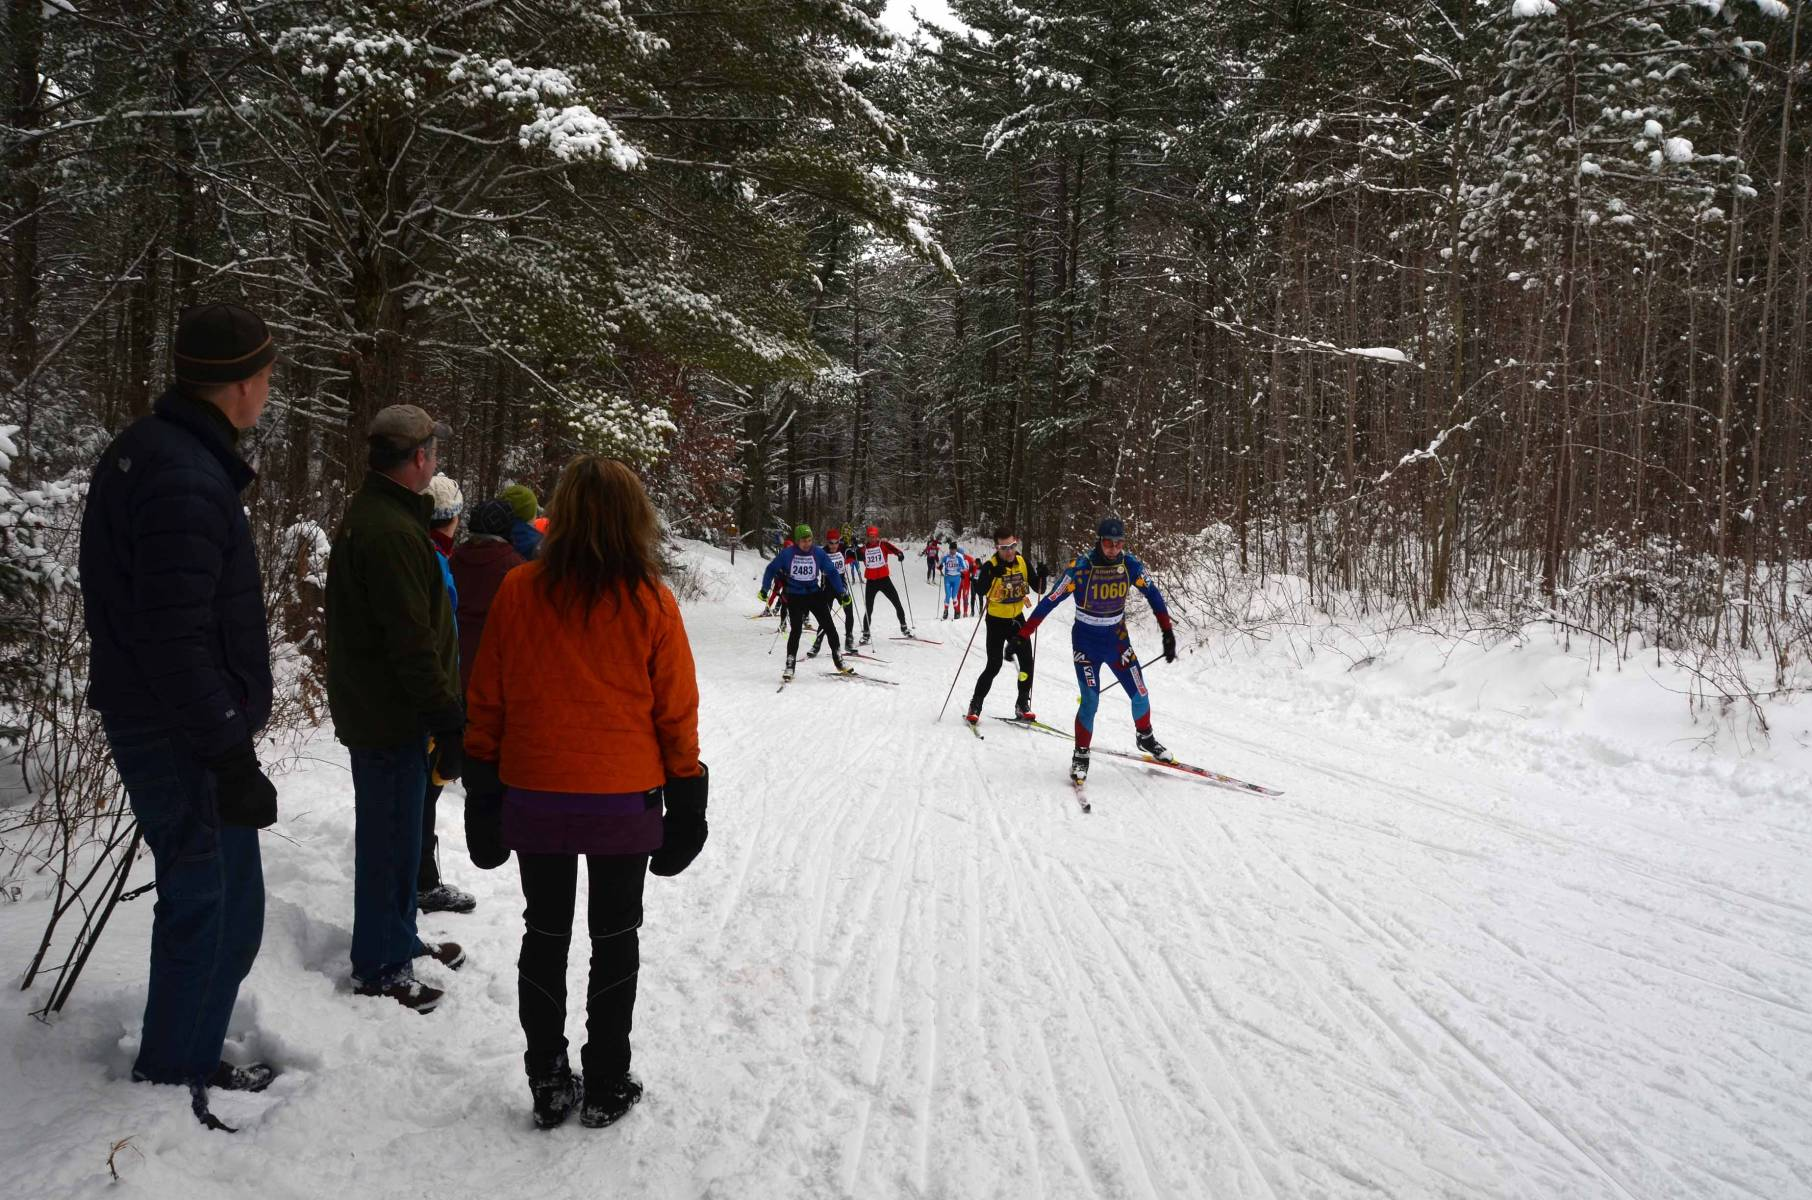 Lodging near Cable, WI Ski Trails